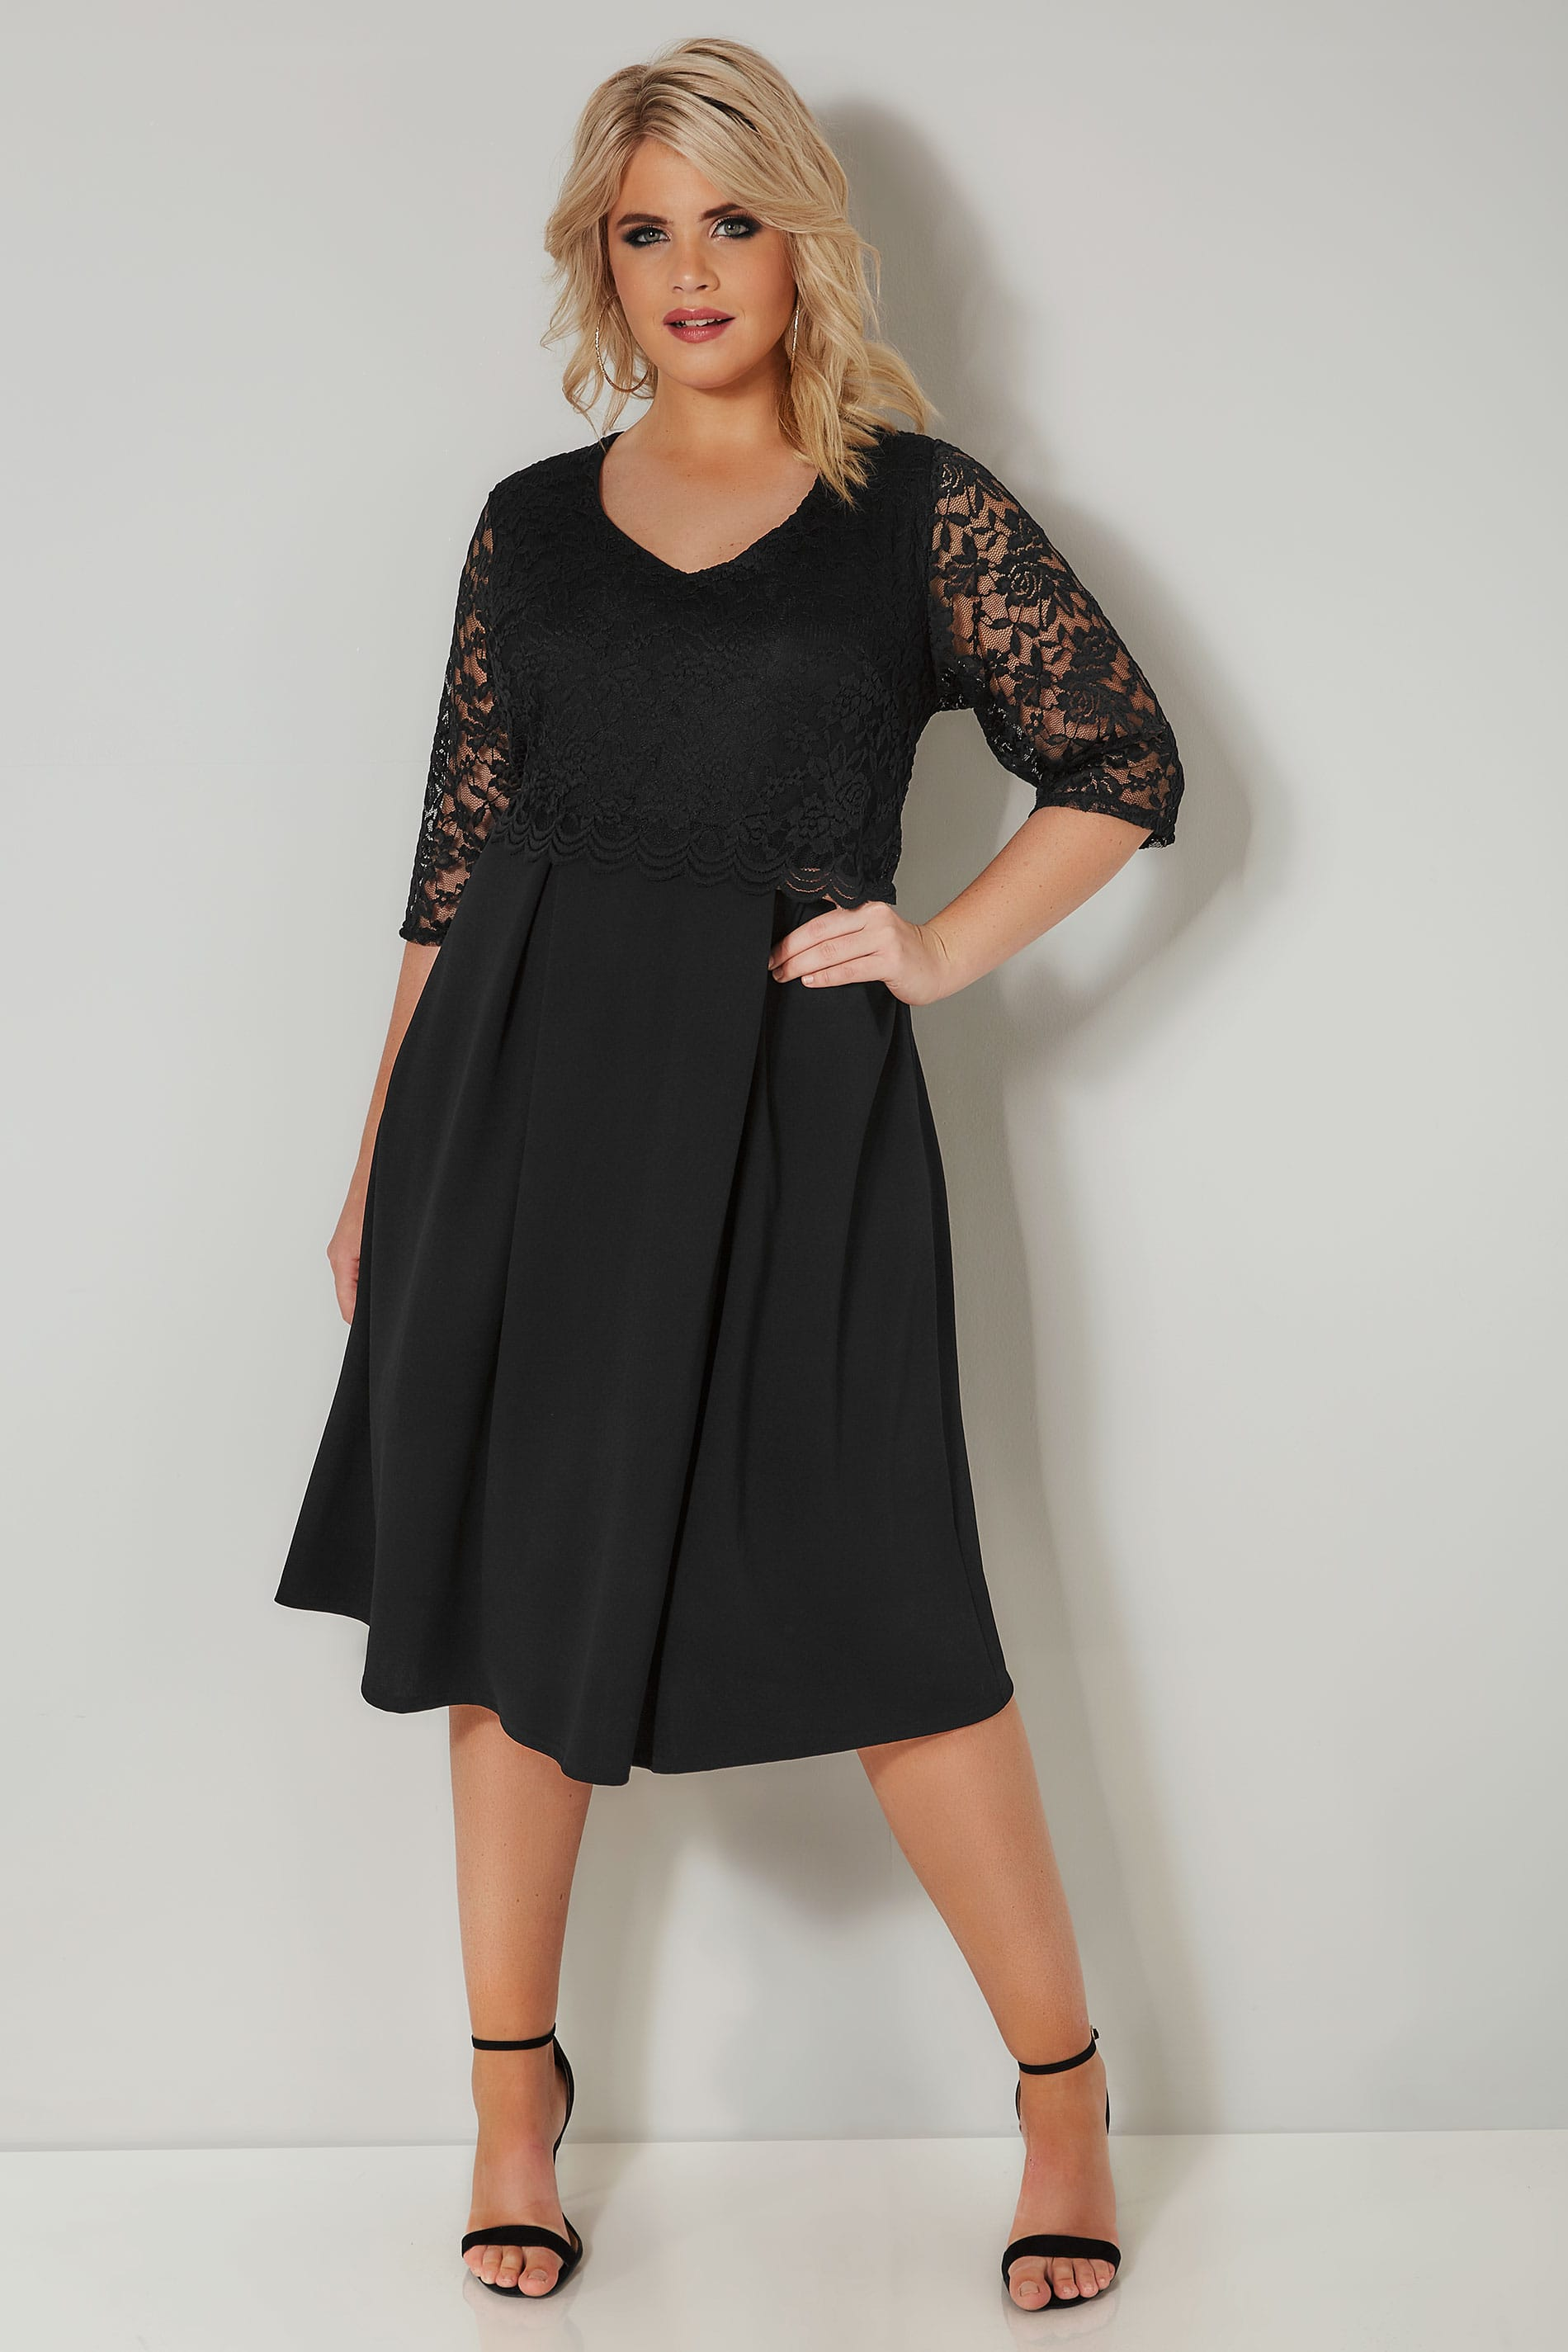 509122ffc8c6 YOURS LONDON Black Lace Midi Dress, plus size 16 to 32